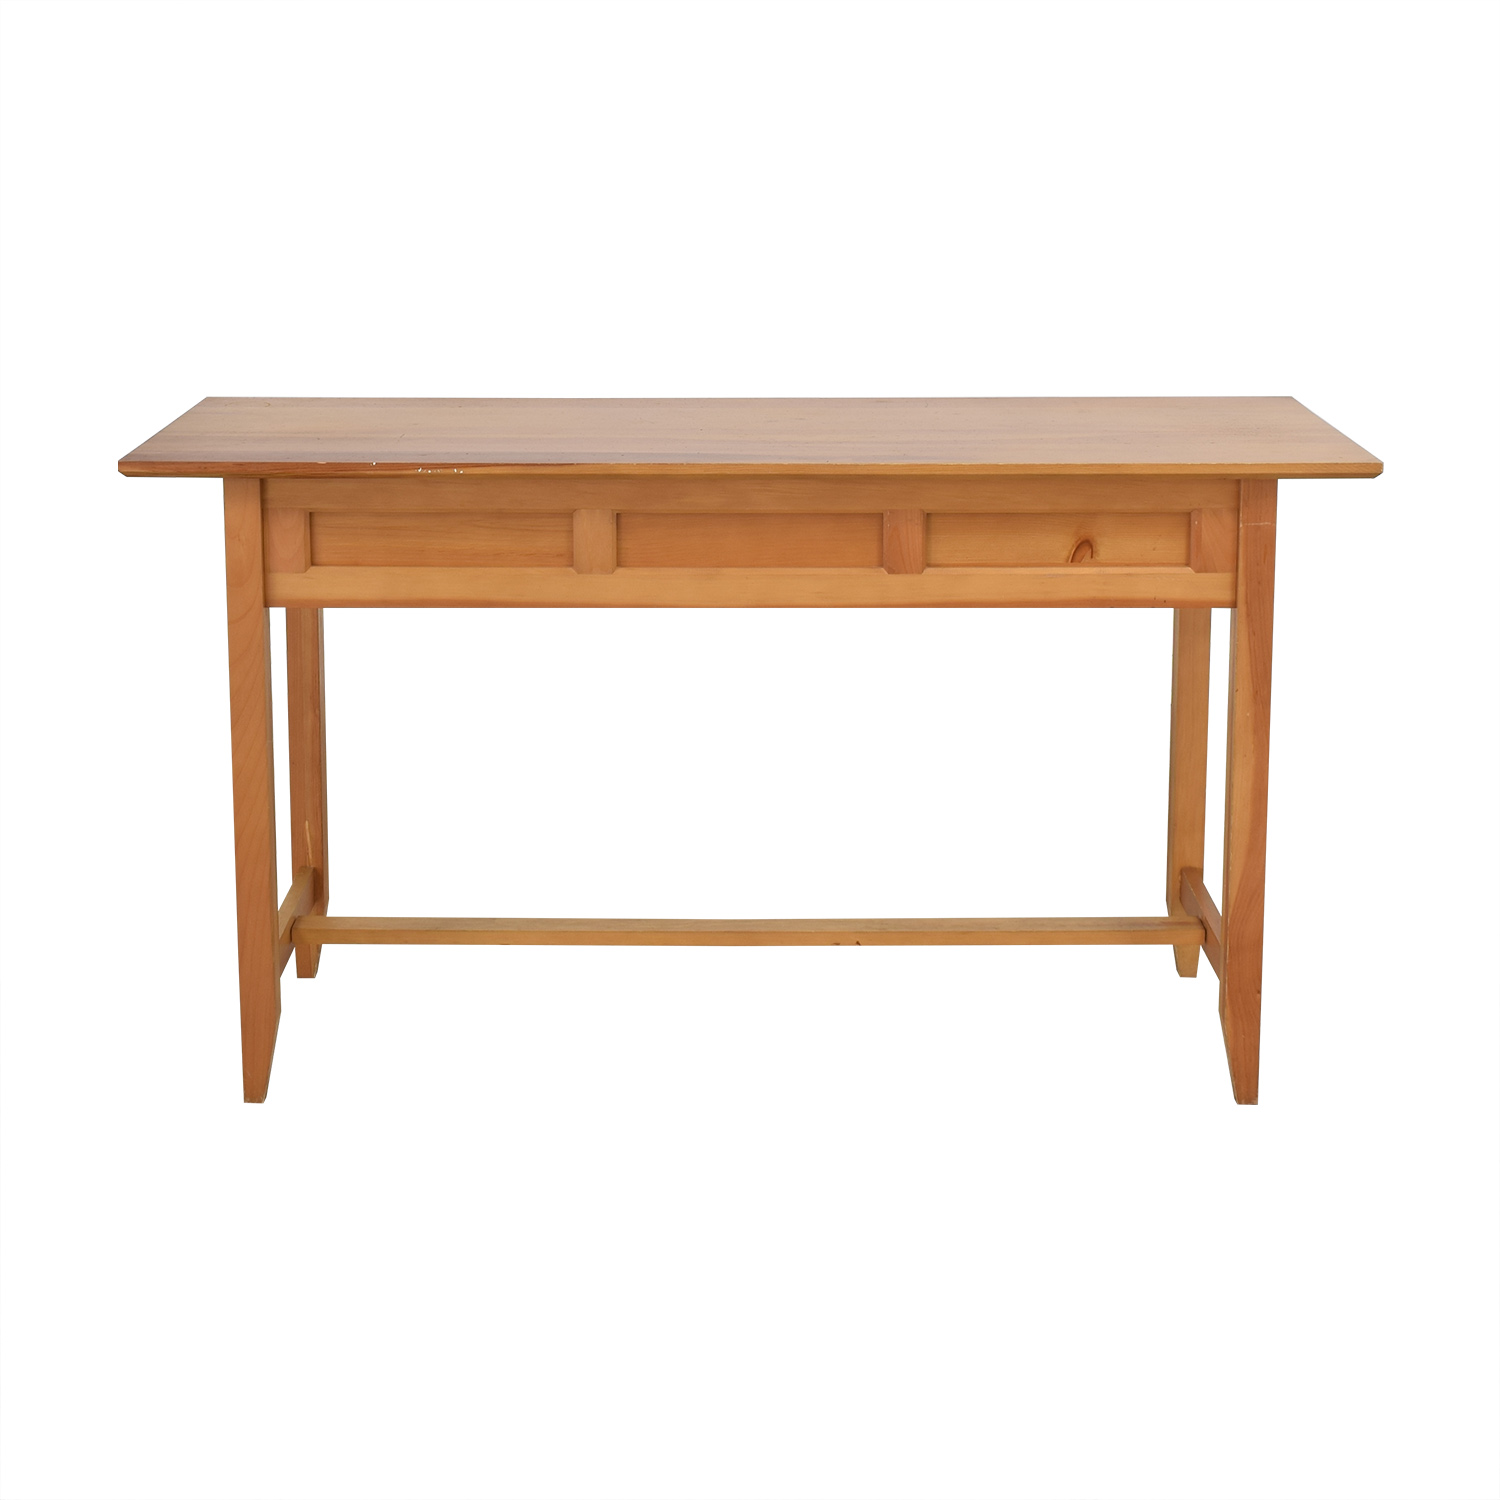 Crate & Barrel Console Table sale